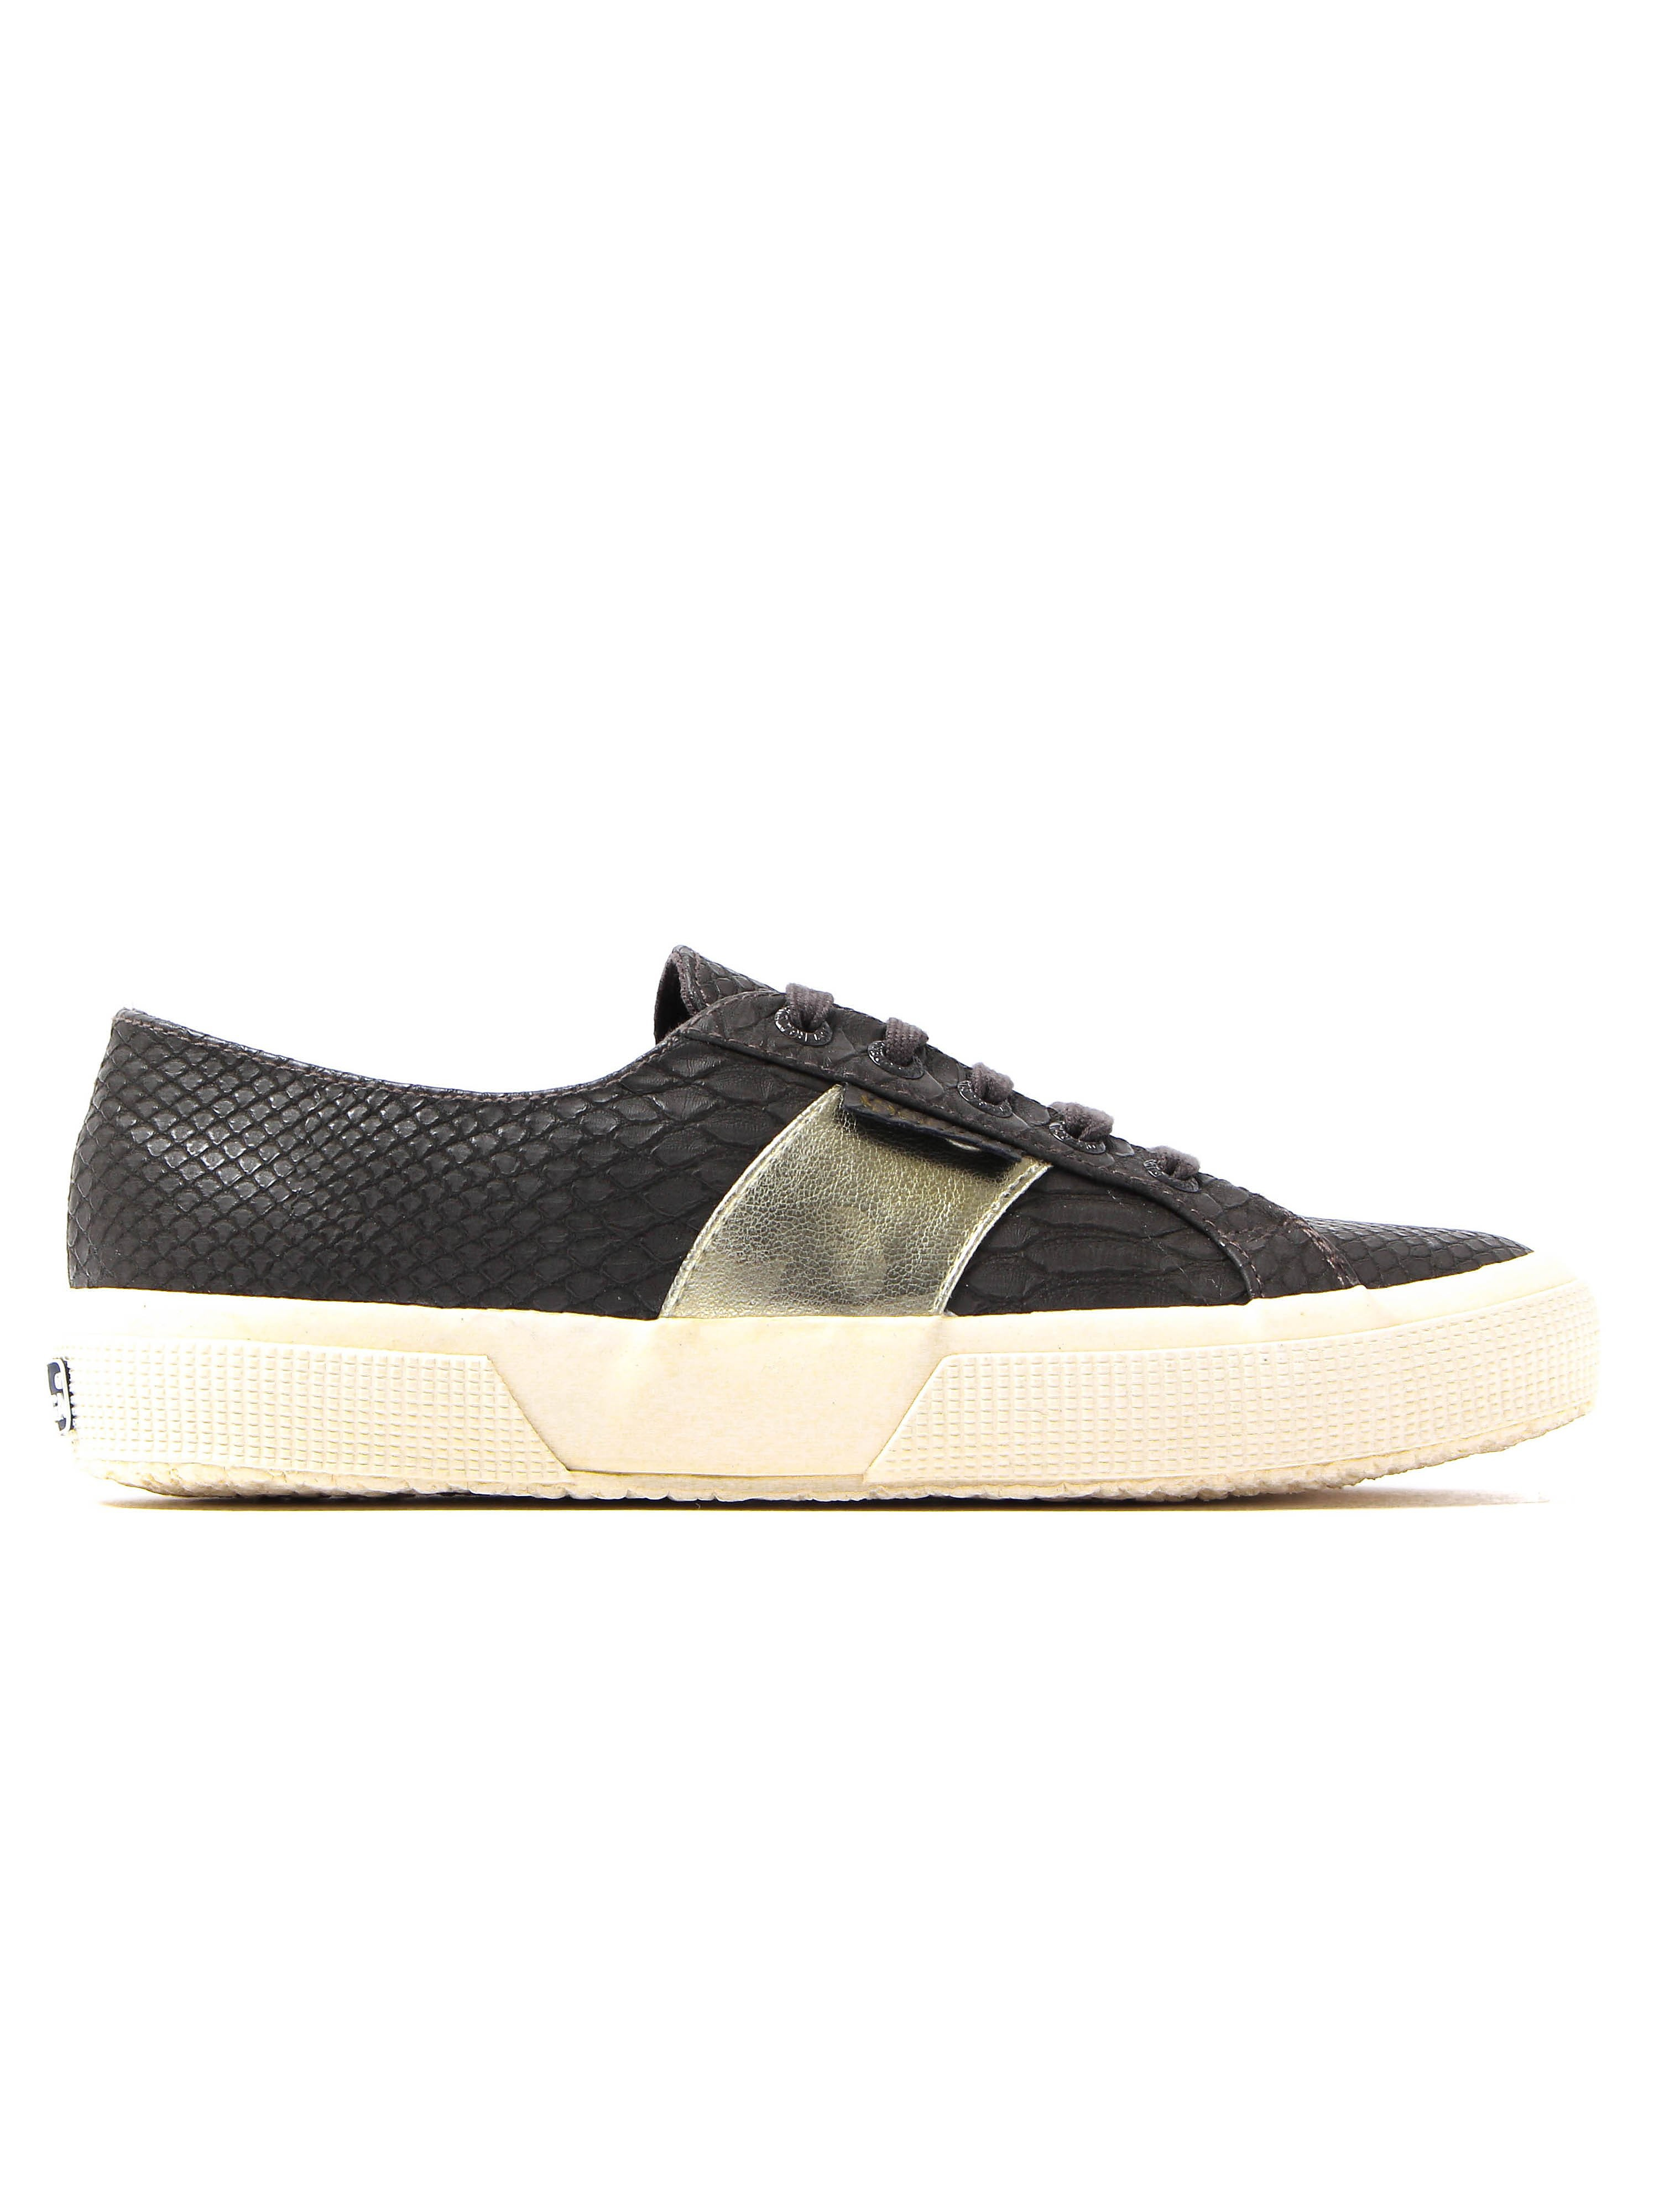 Superga Women's 2750 Snake Trainers - Brown Coffee